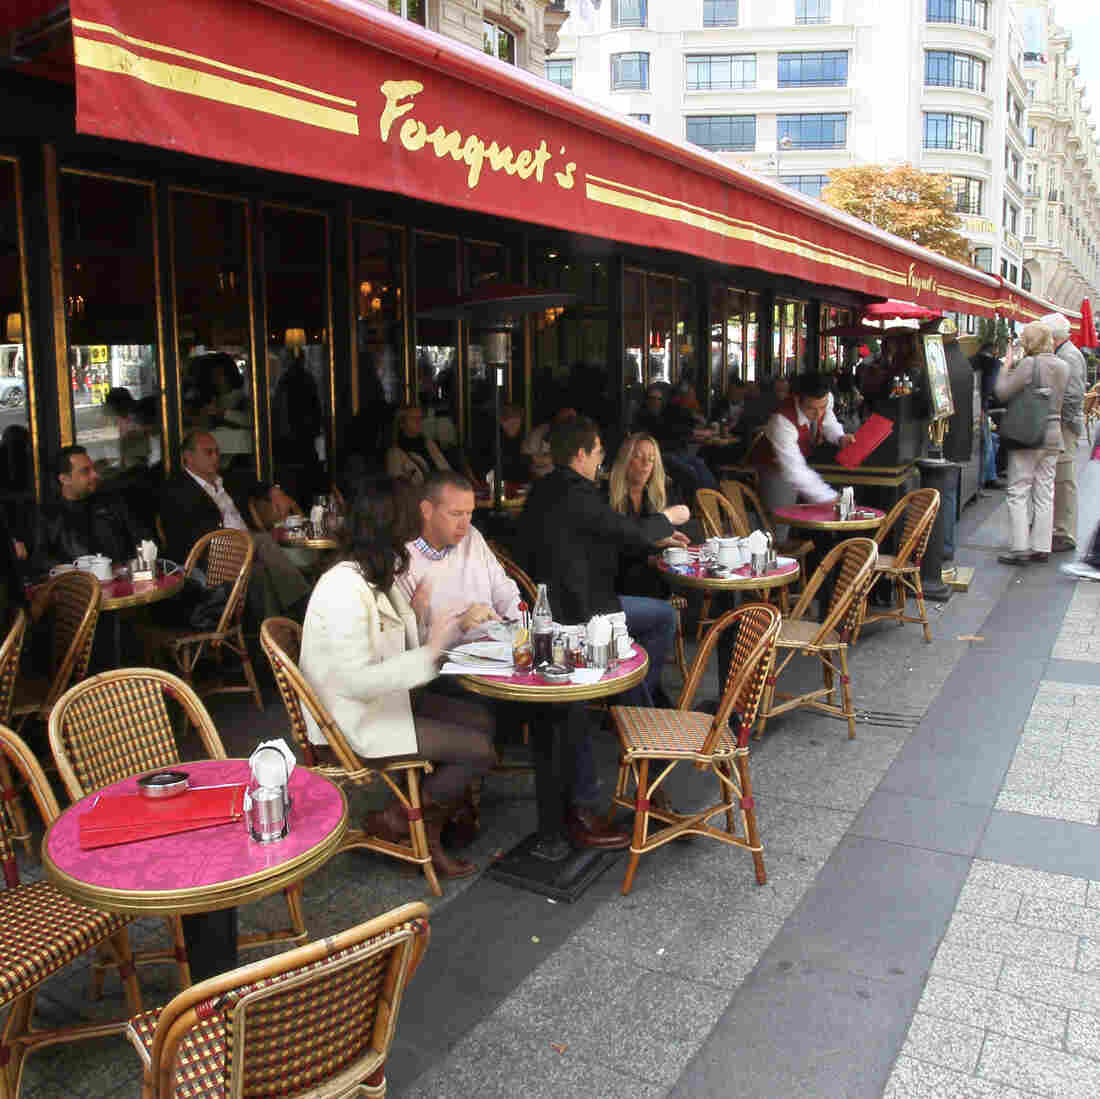 As Global Chains Move In, The Champs Elysees Gets A New Look